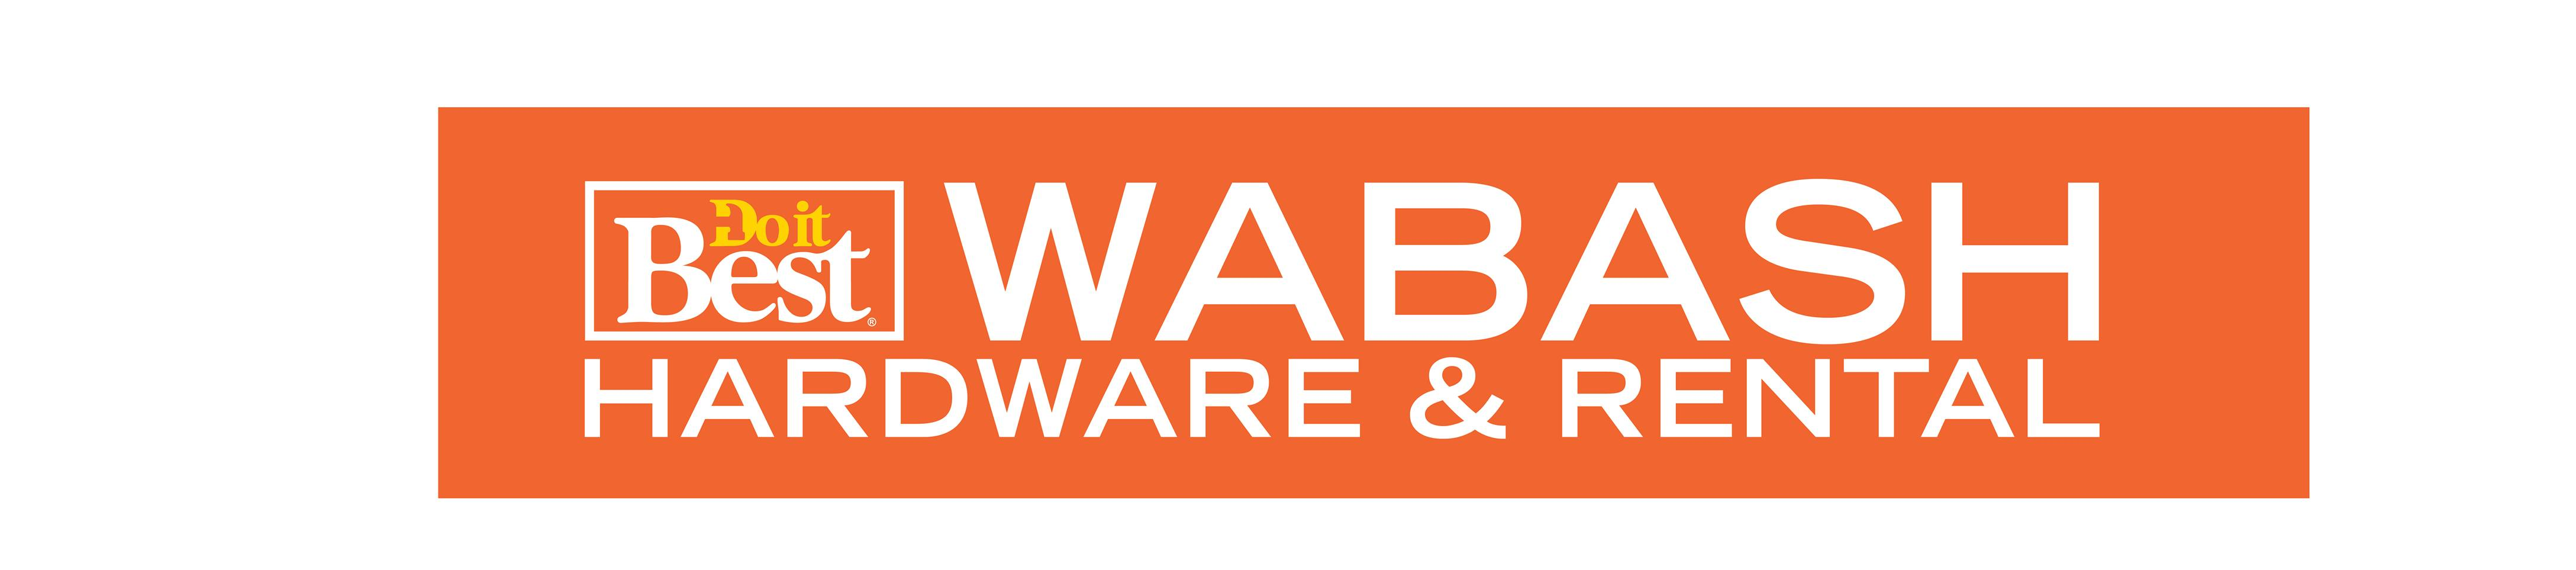 Your news local ribbon cut at wabash do it best hardware ribbon cut at wabash do it best hardware solutioingenieria Image collections